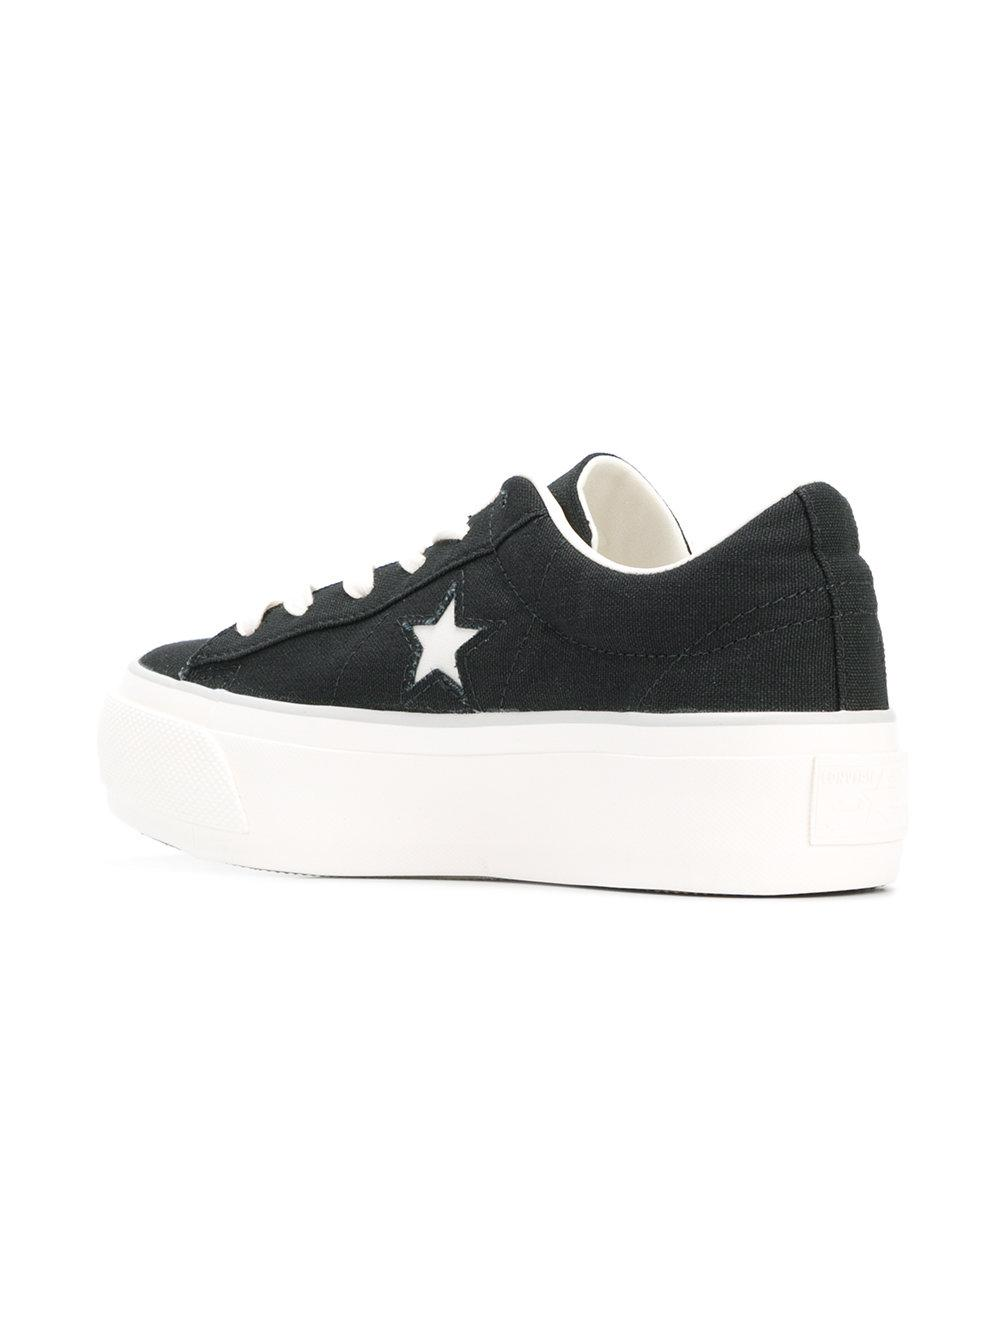 911ac3a35094 Gallery. Previously sold at  Farfetch · Women s Converse Platform Women s Platform  Sneakers